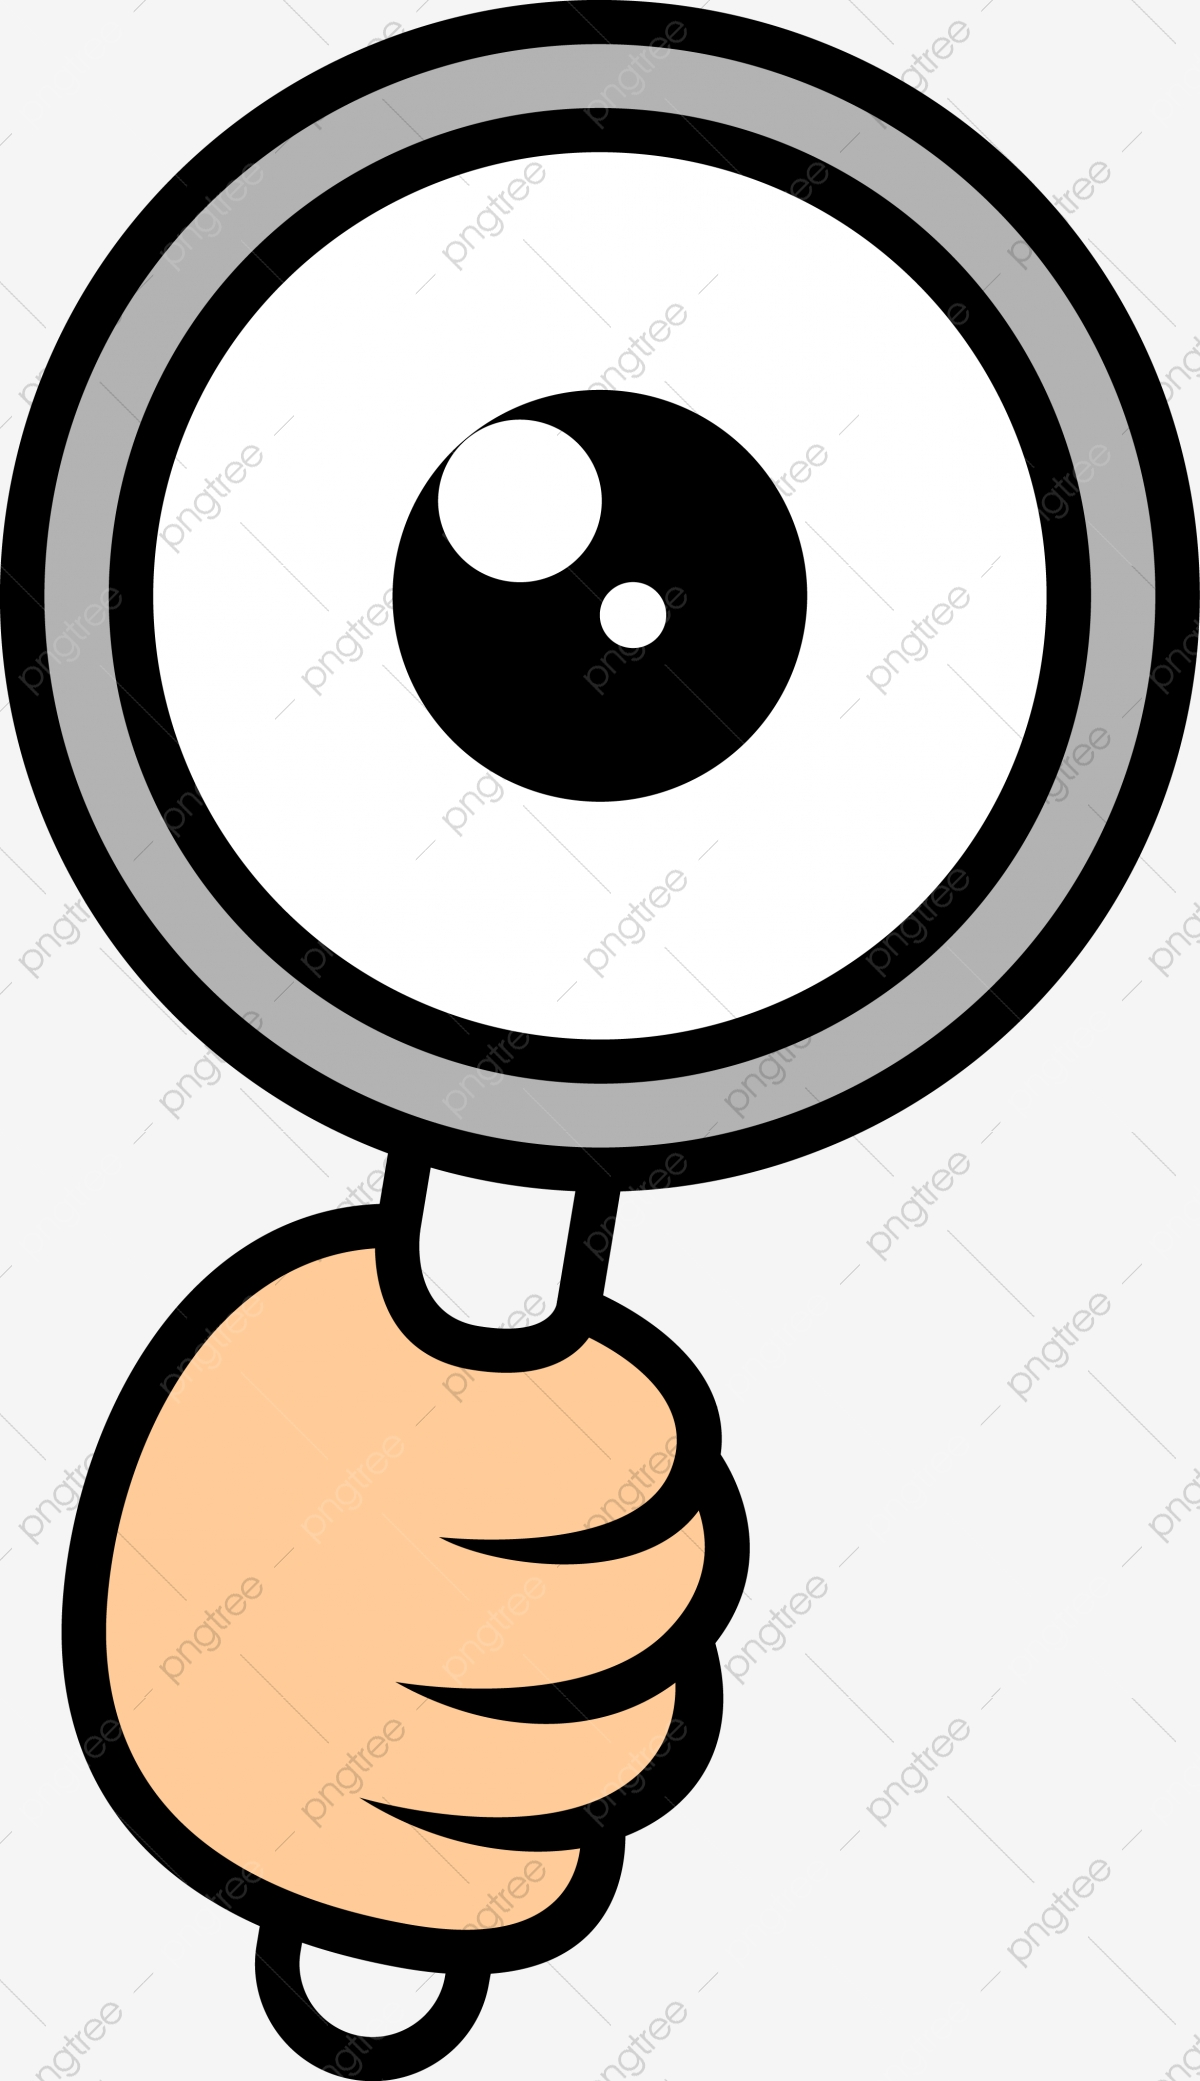 Eyes Cartoon Png : cartoon, Cartoon, Magnifying, Glass, Decorative, Transparent, Clipart, Black, White,, Color,, Vector, Background, Download